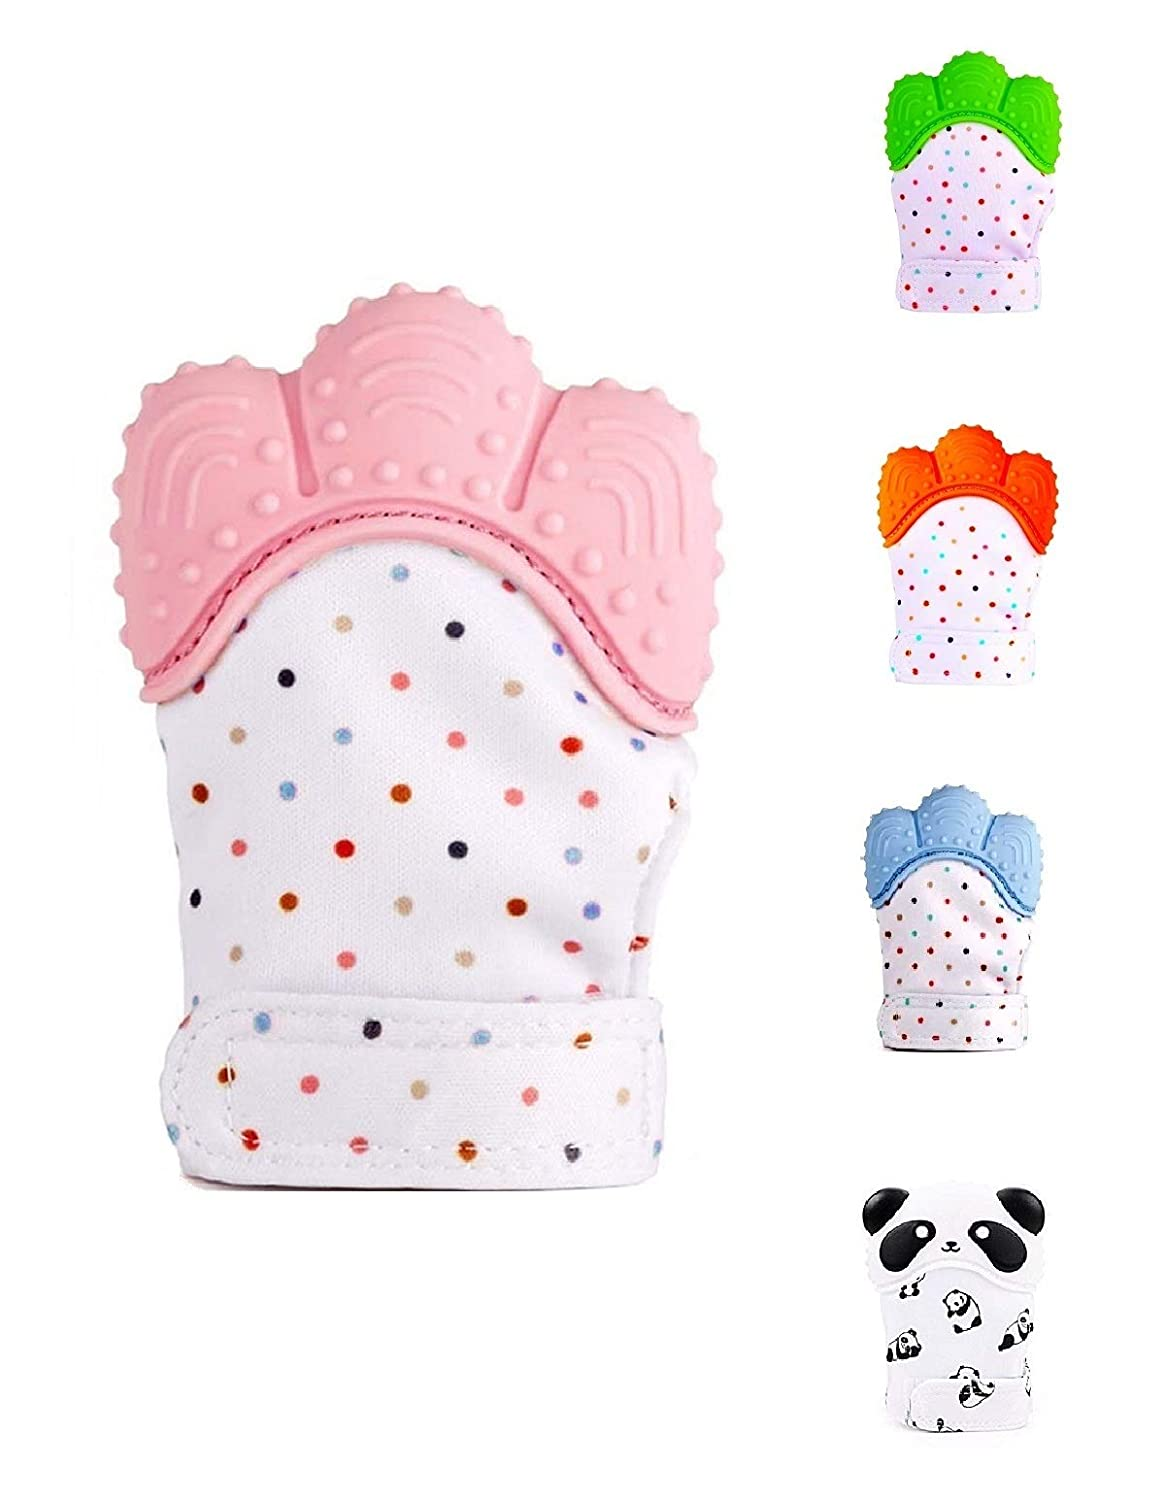 Pink Teething Glove Silicone Teething Glove Hygienic Silicone Teether Mitten for Self-Soothing Pain Relief Protects Babys Hands from Chewing.